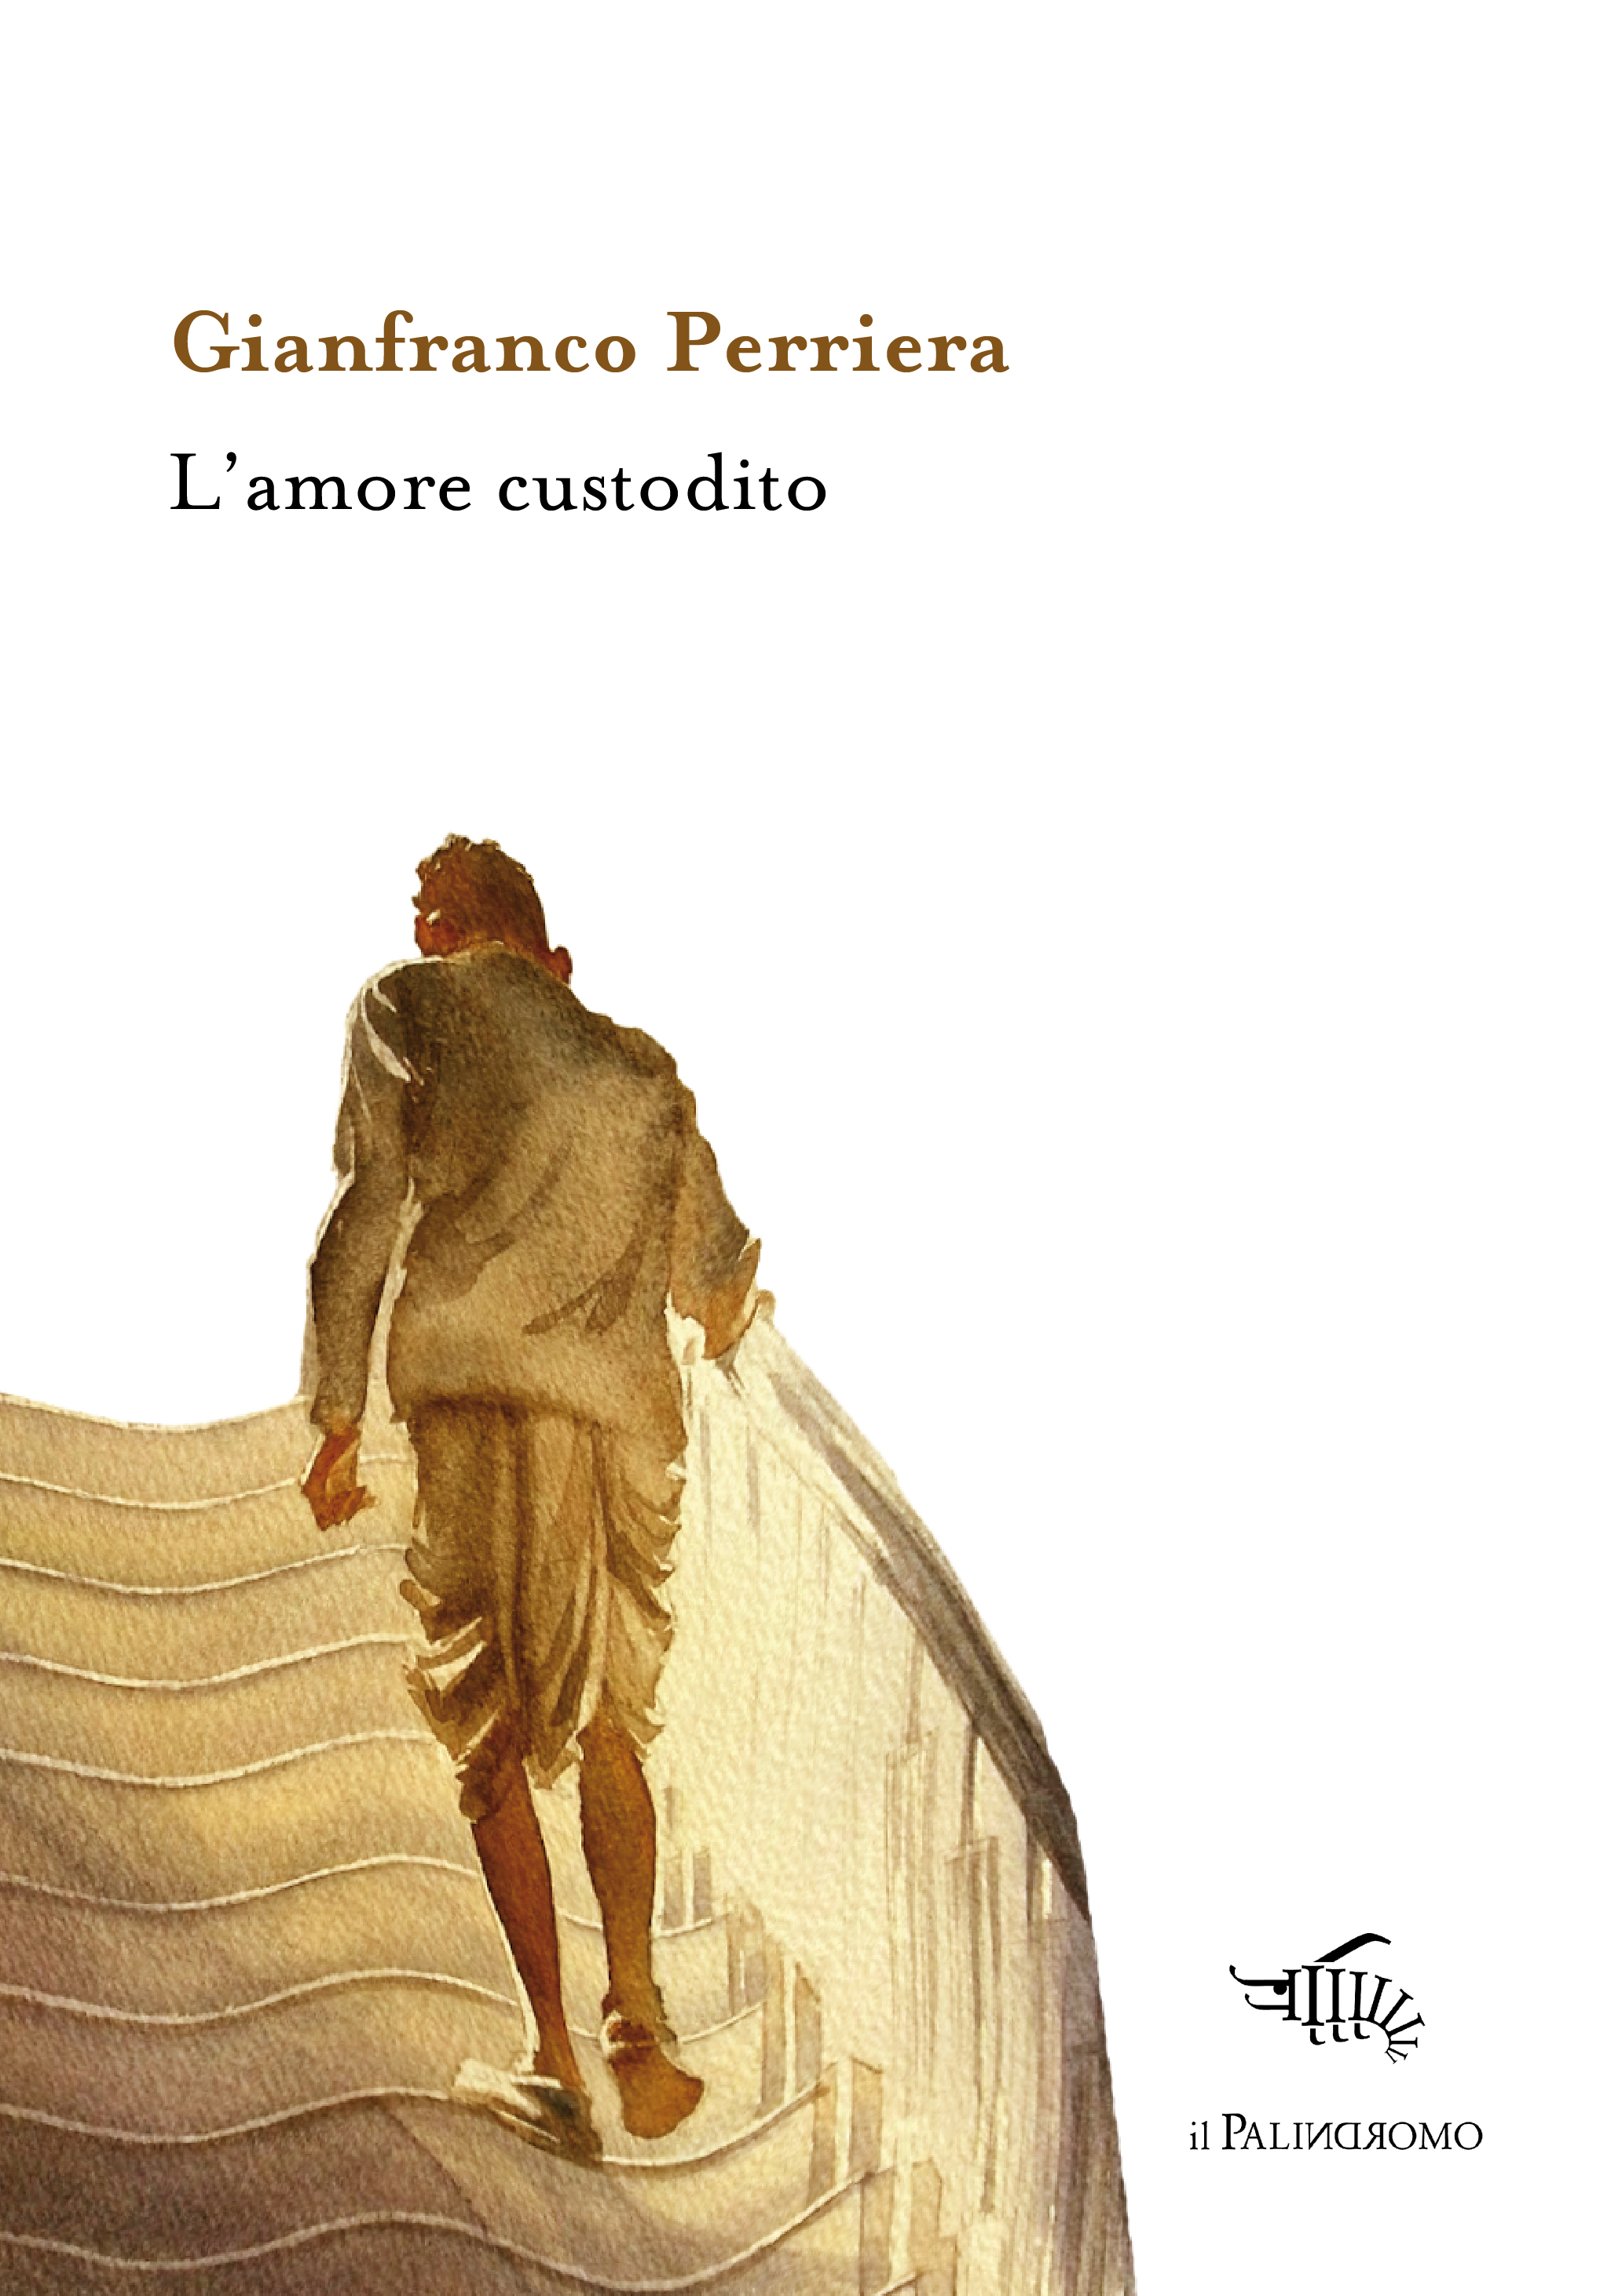 Autore: Gianfranco Perriera